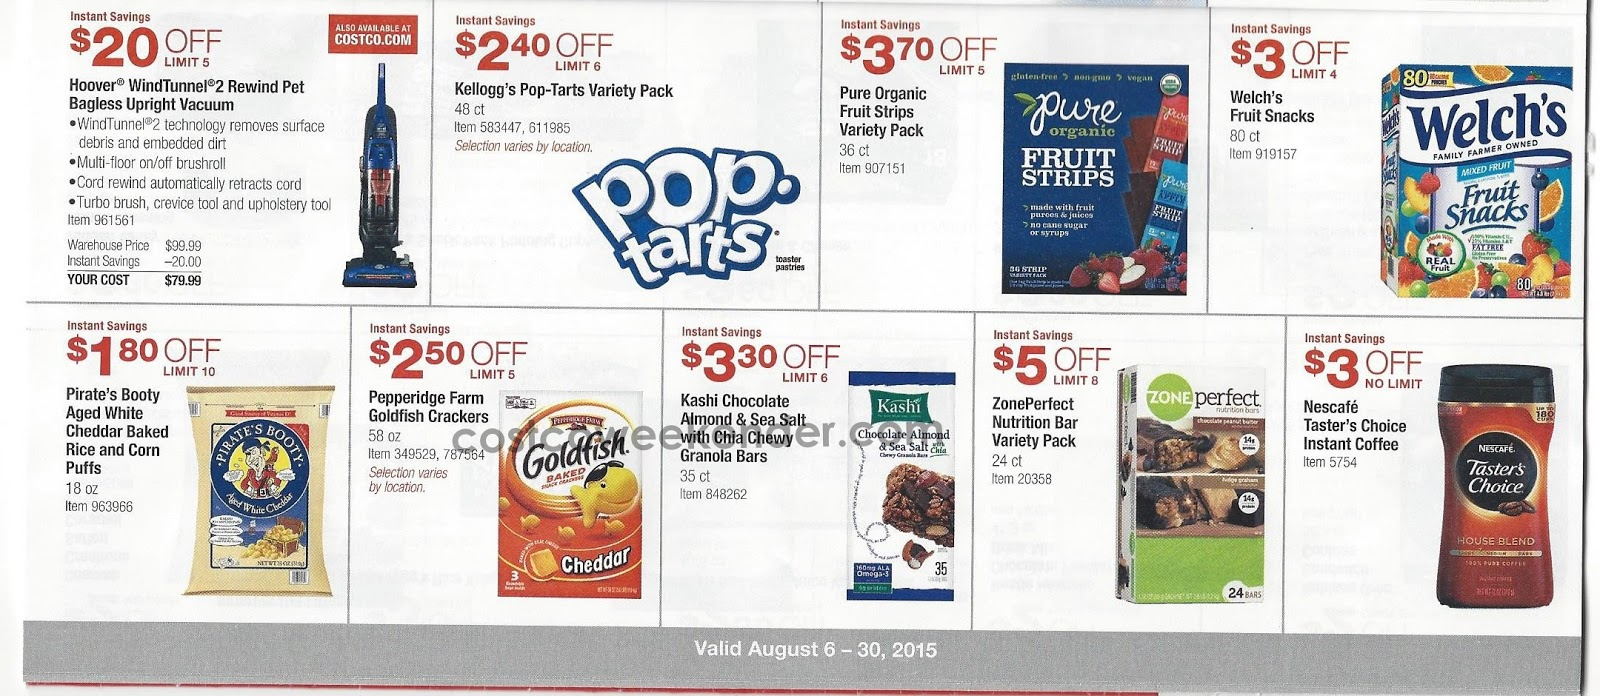 Costco discount coupon book